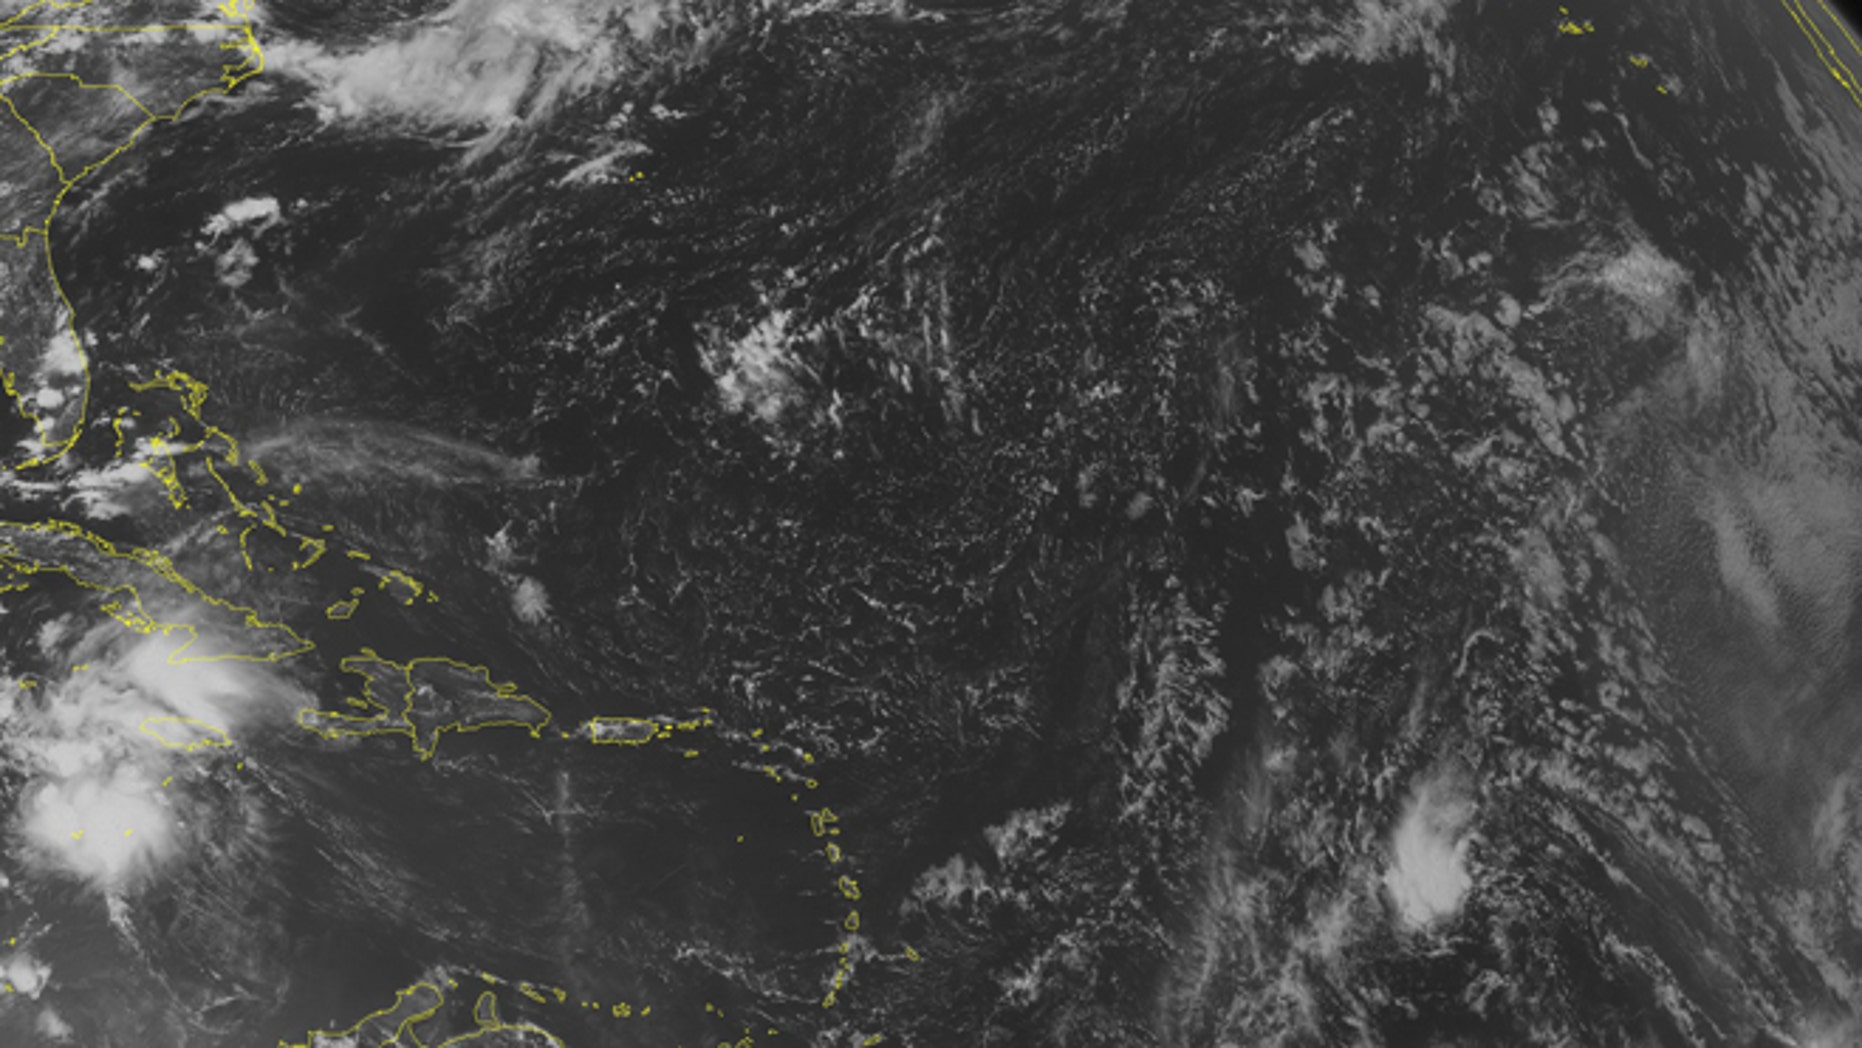 NOAA satellite image taken Tuesday, Aug. 2, 2016 at 12:45 PM EDT shows Tropical Storm Earl 210 miles south of Grand Cayman.